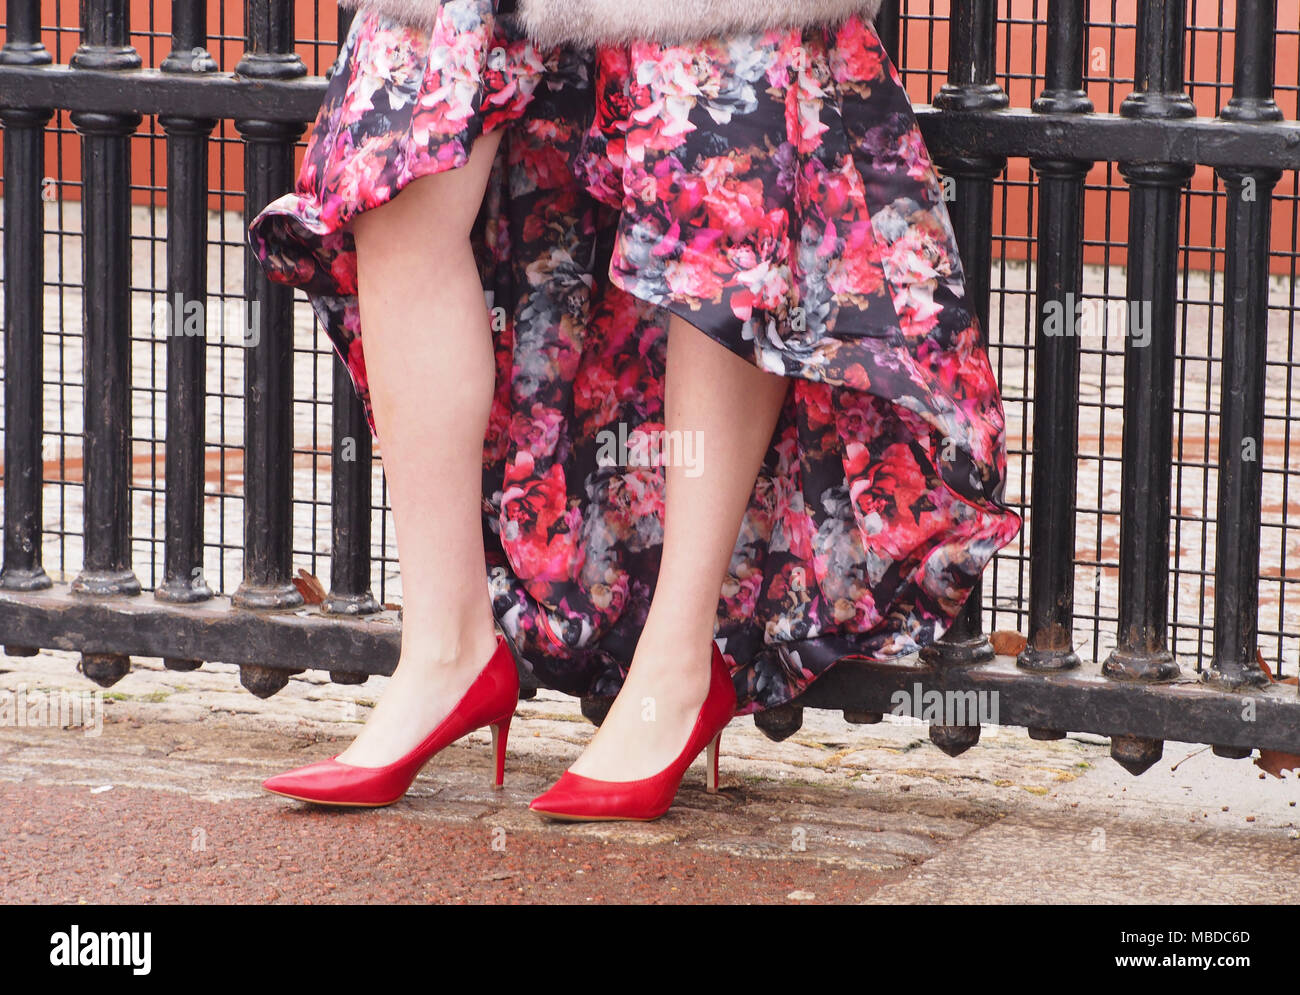 3293b2ecfa3 A young woman s legs and ankles wearing red stiletto heels and a flowery  dress in front